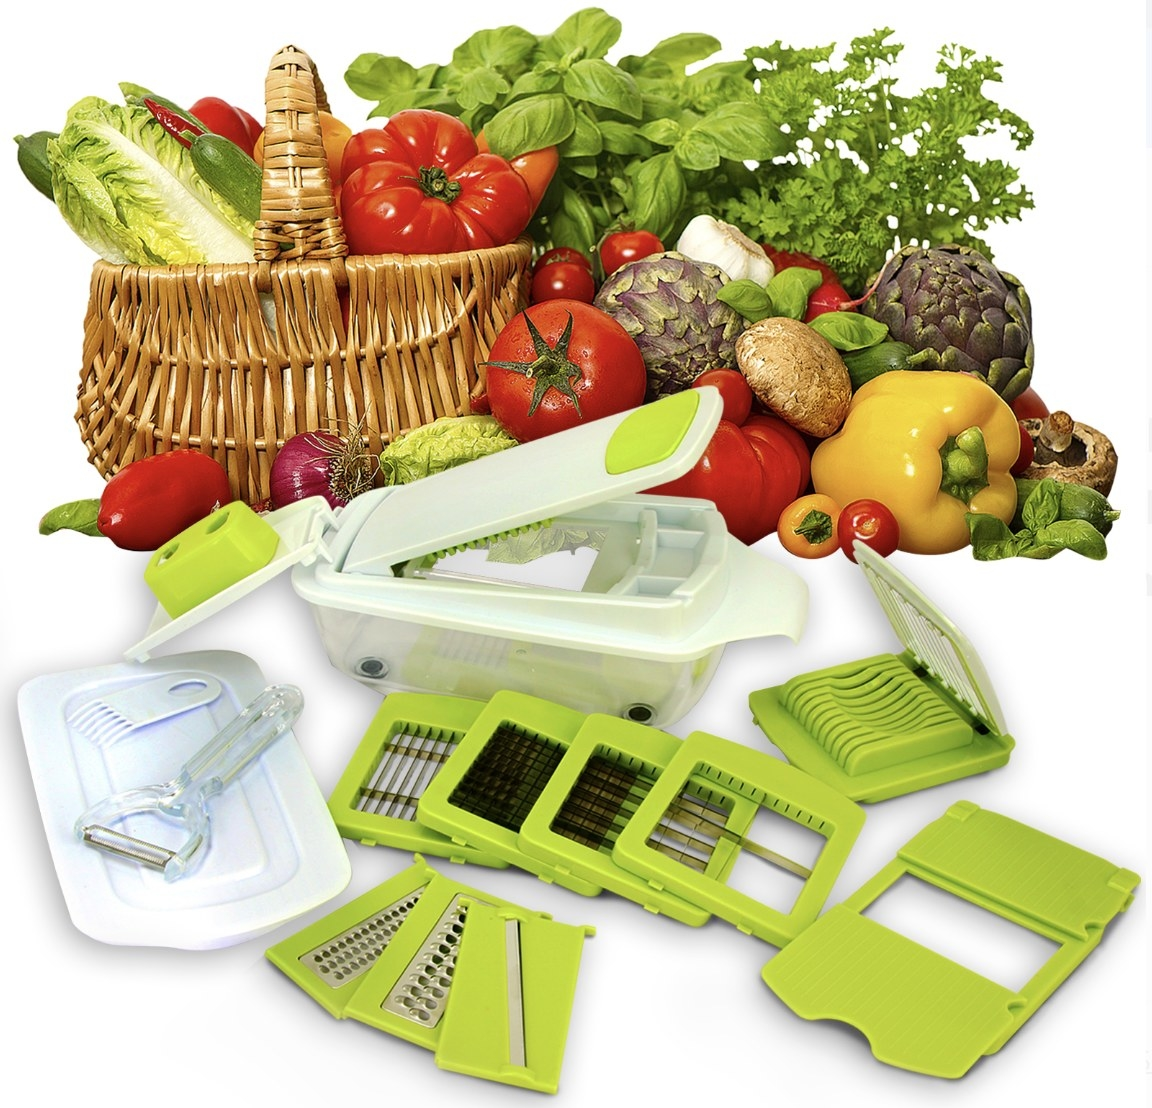 The green and white slicing set and assortment of veggies fill the frame